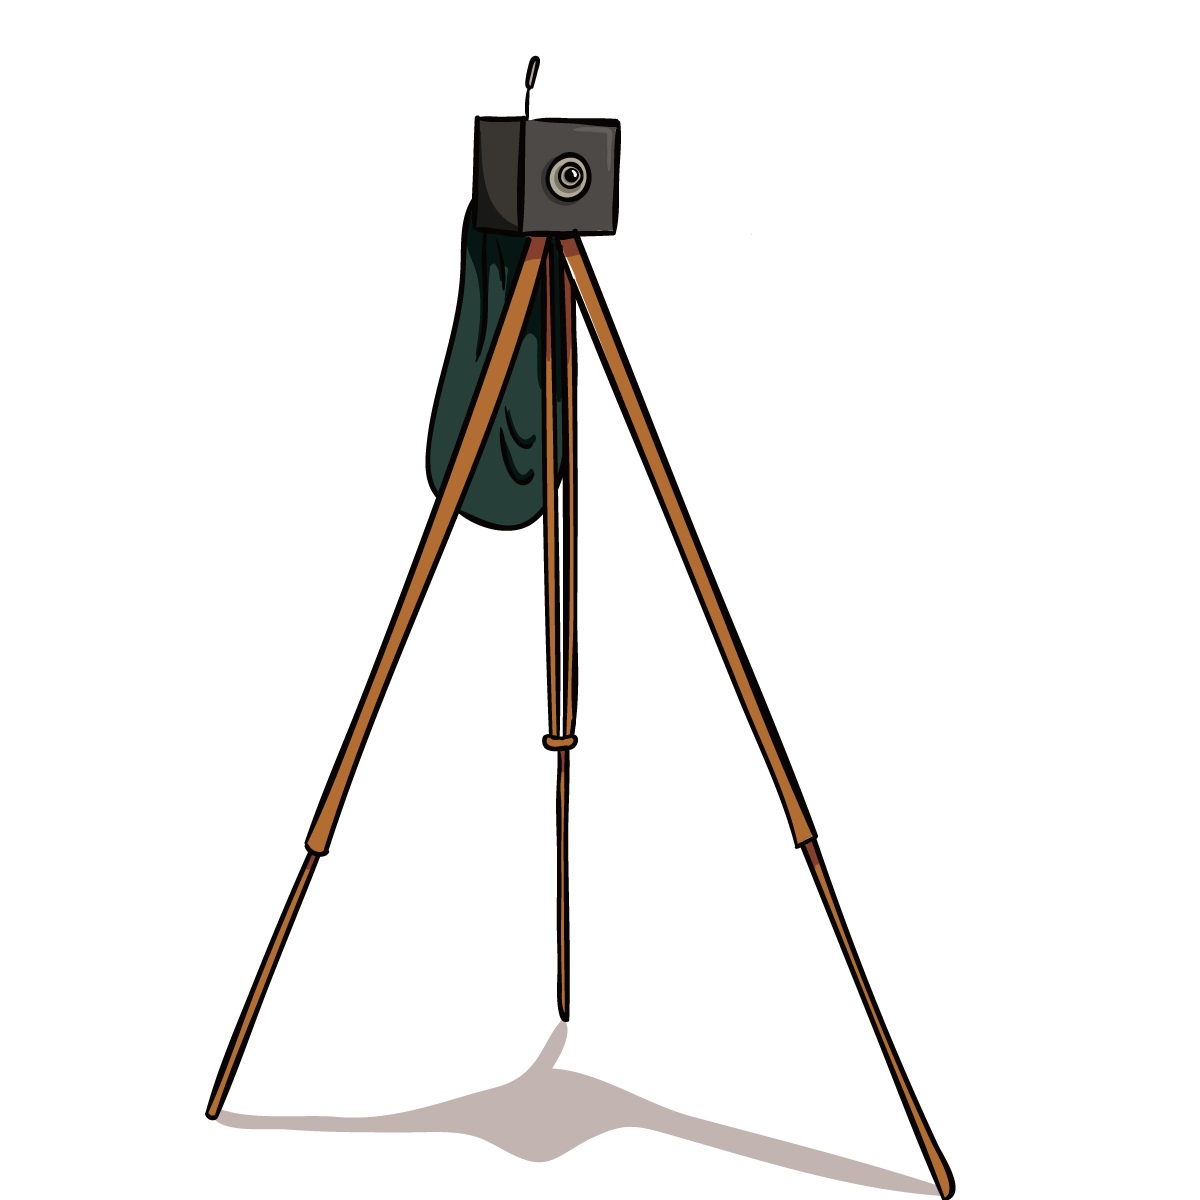 kisspng-tripod-camera-vector-simple-camera-5aae61e468a882.6913593615213777644287